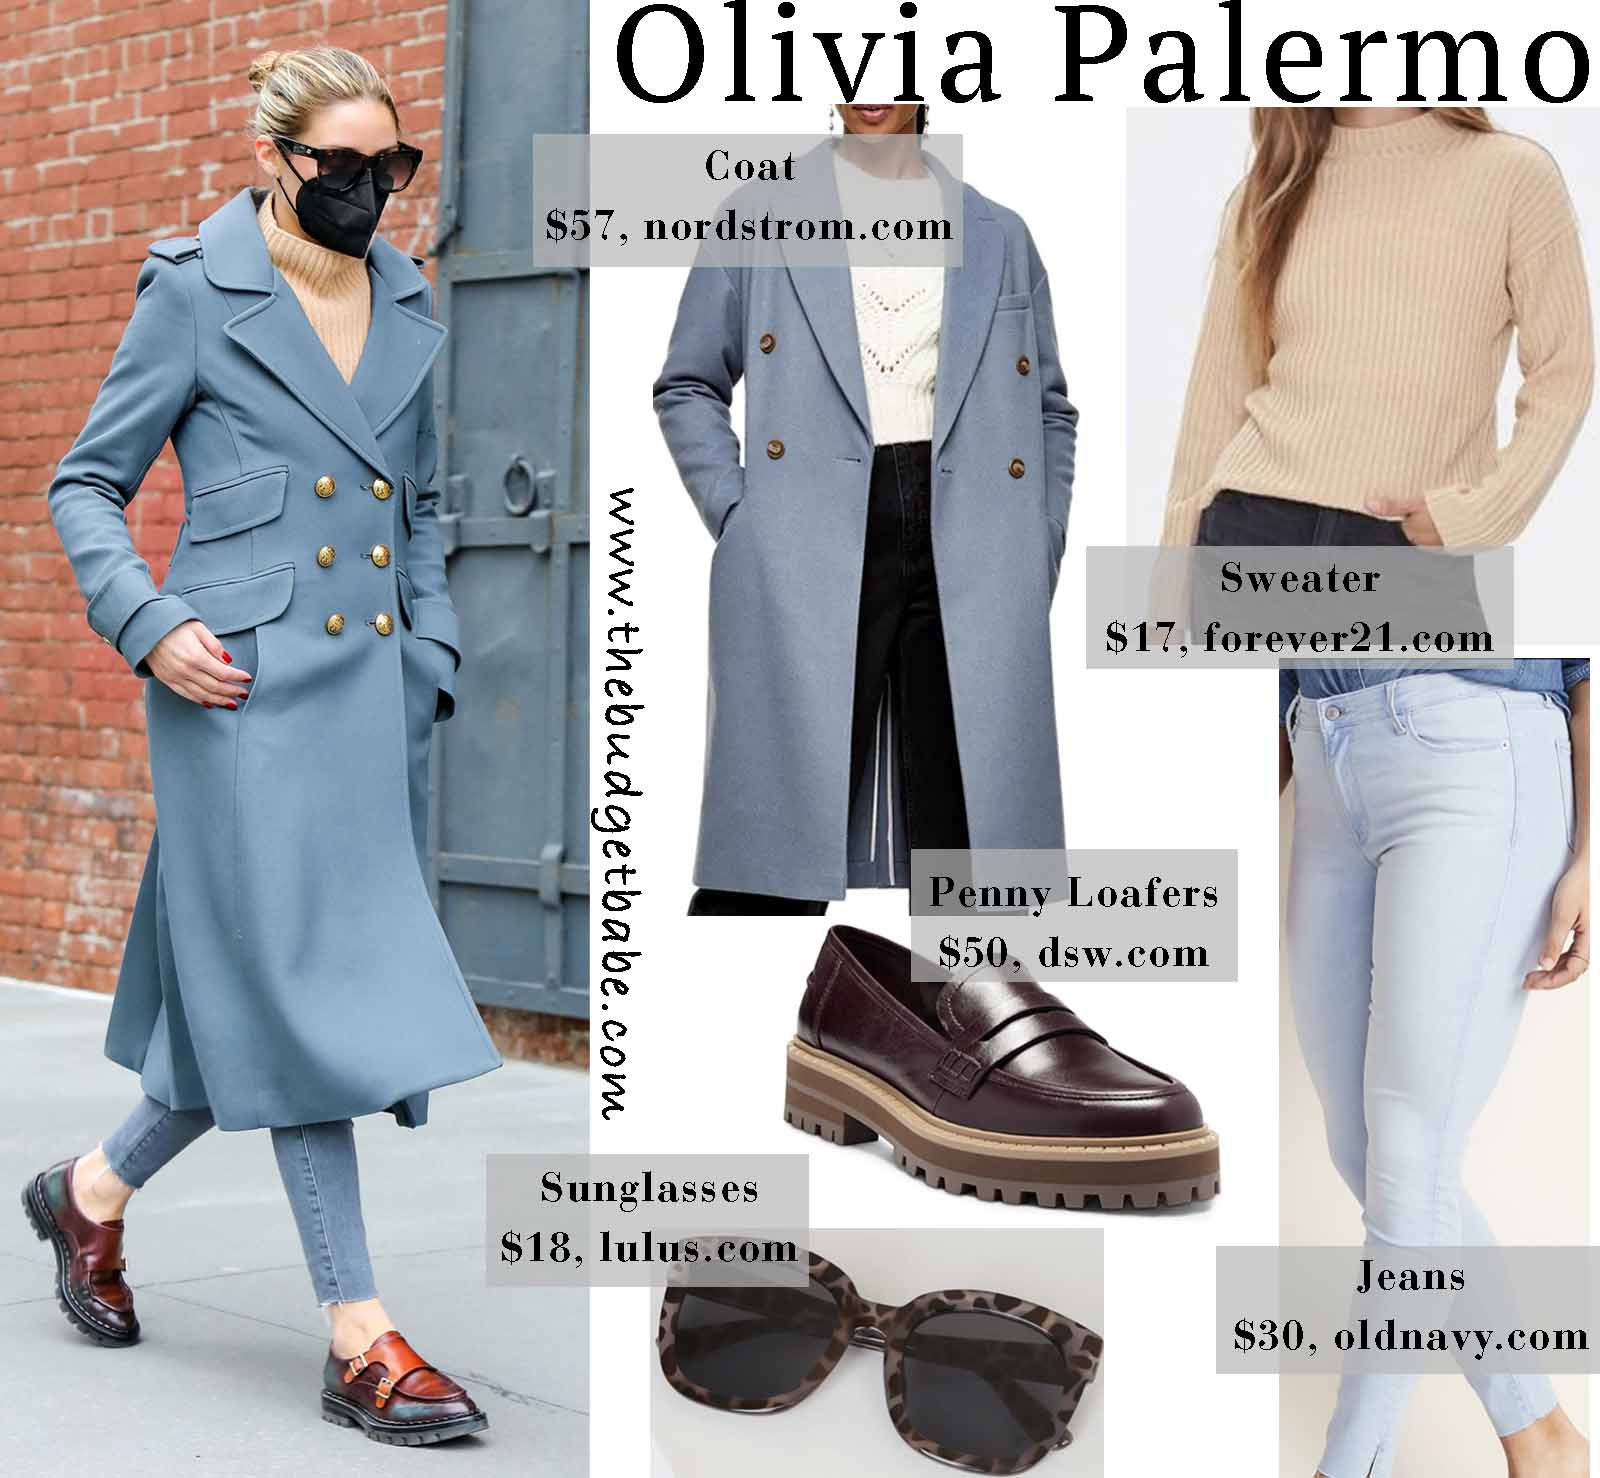 Olivia's style is timeless!